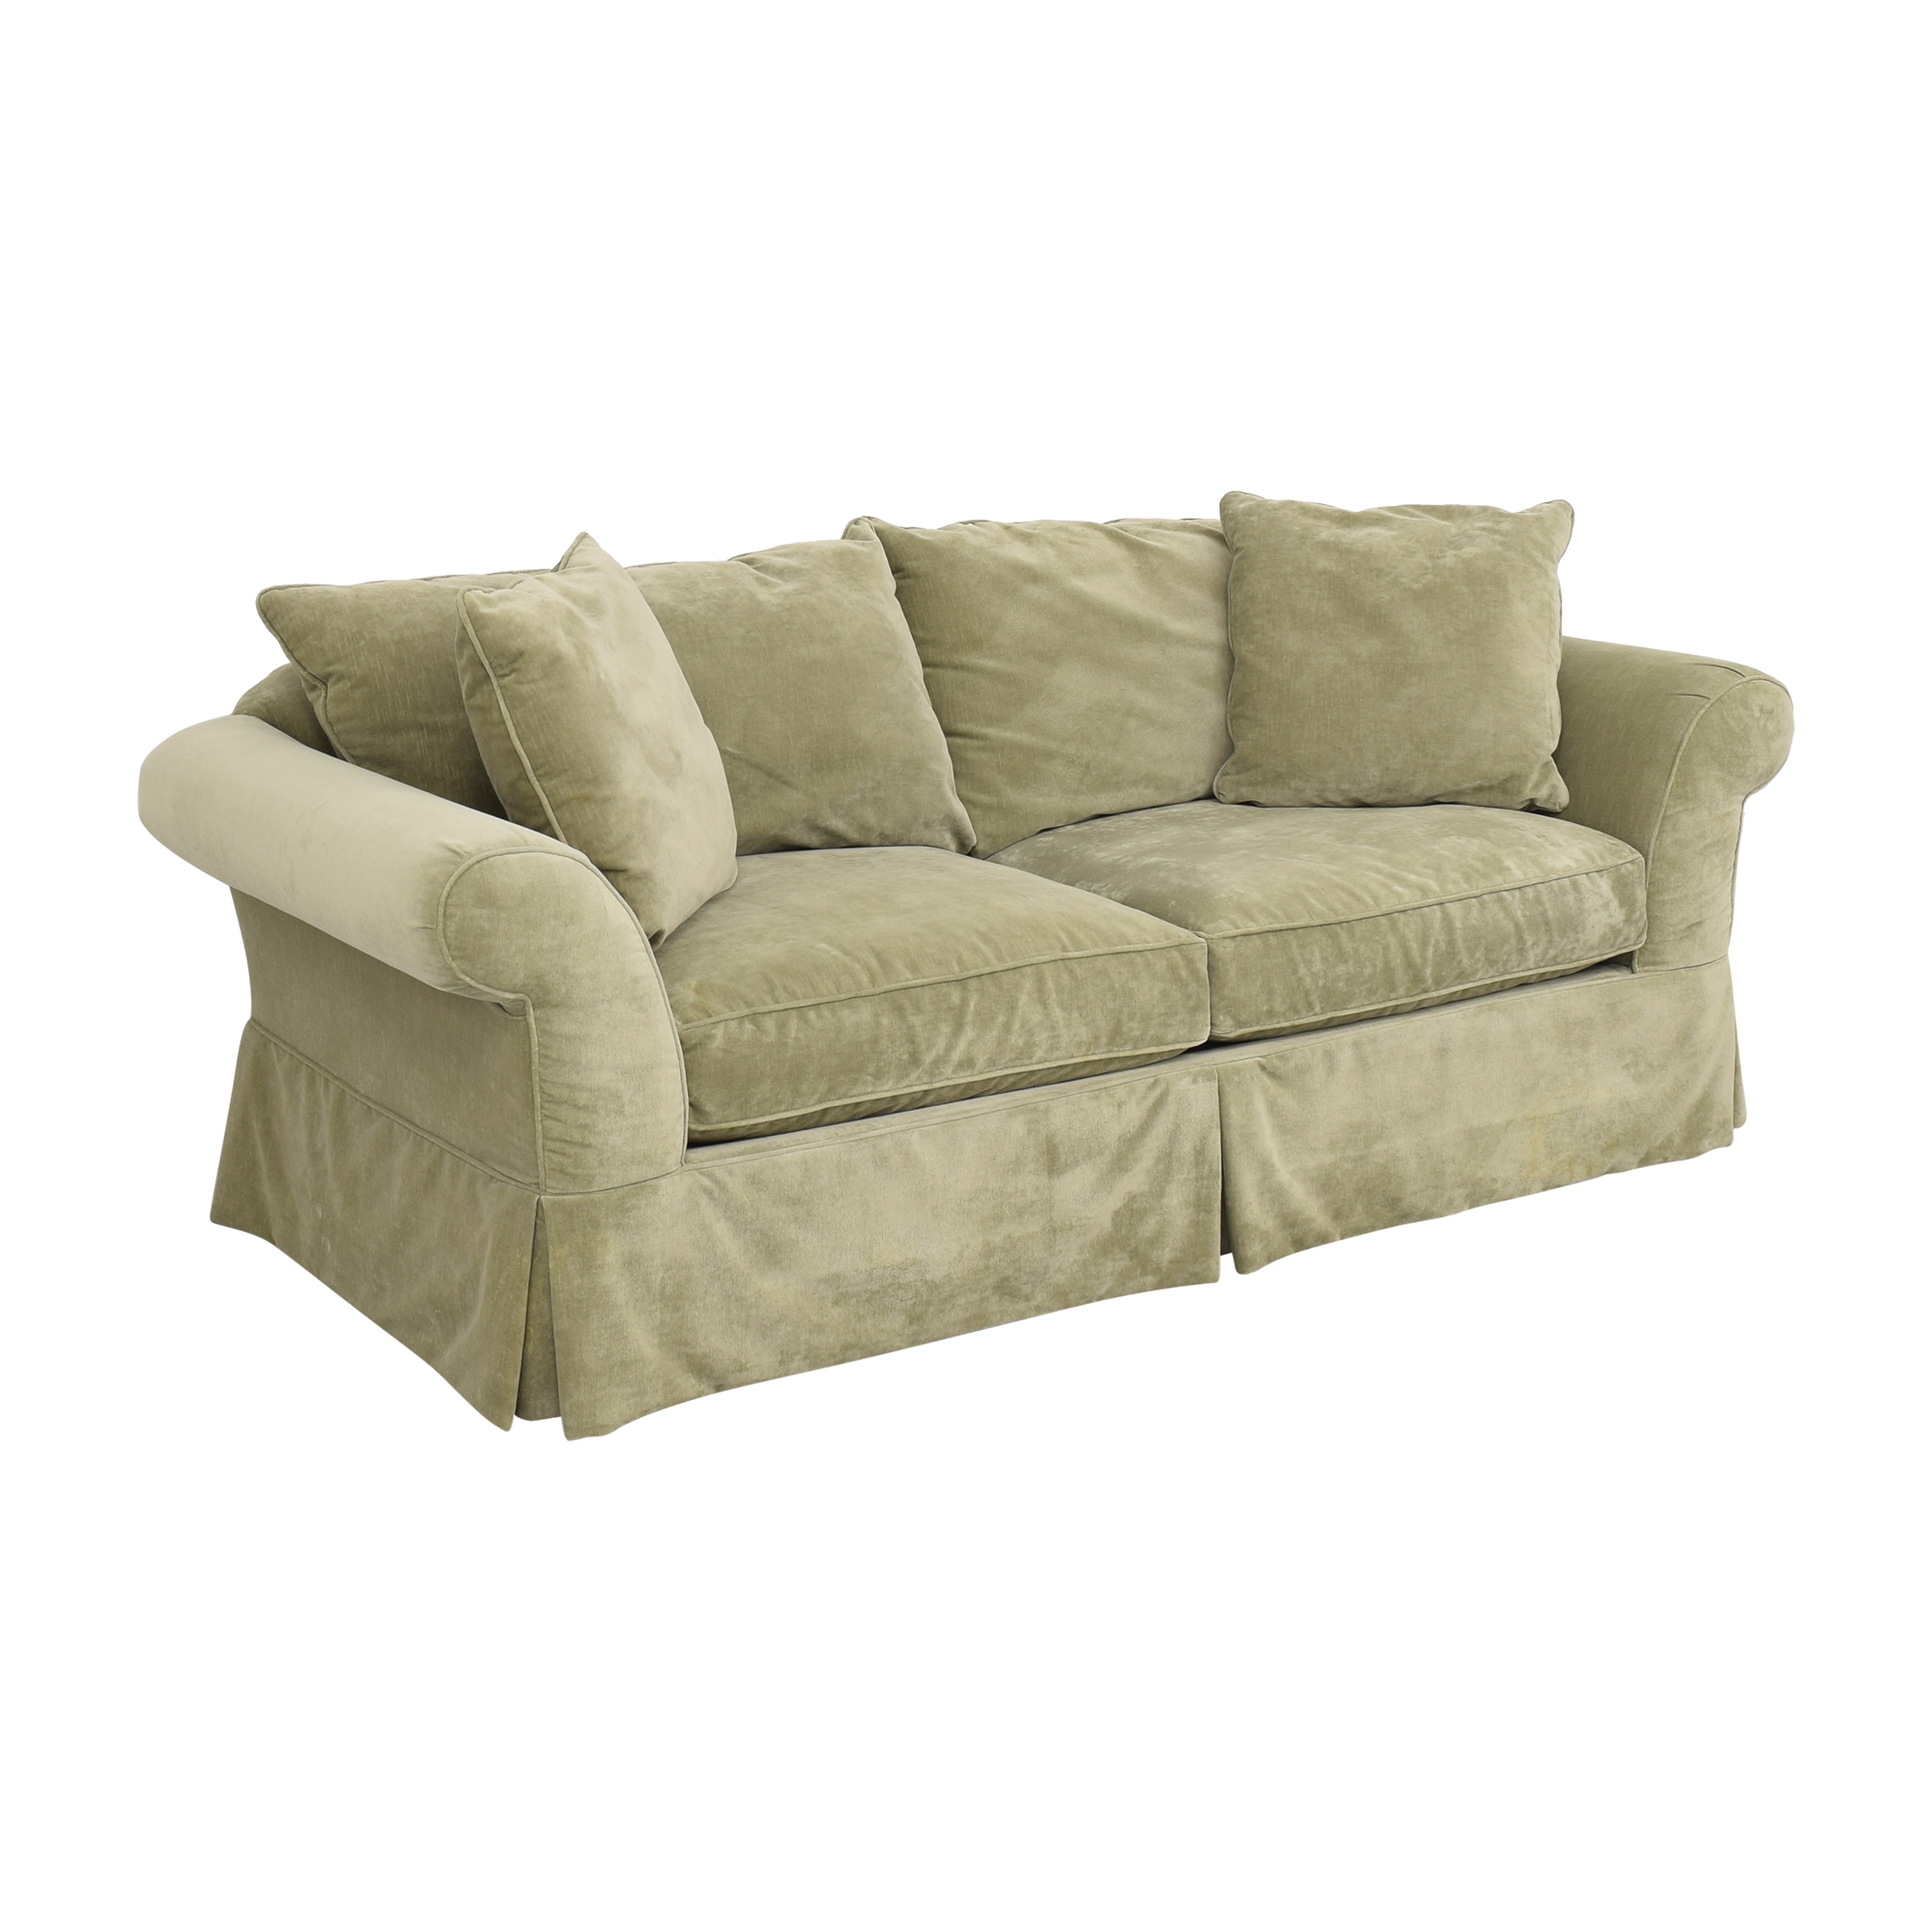 Domain Domain Skirted Sofa dimensions